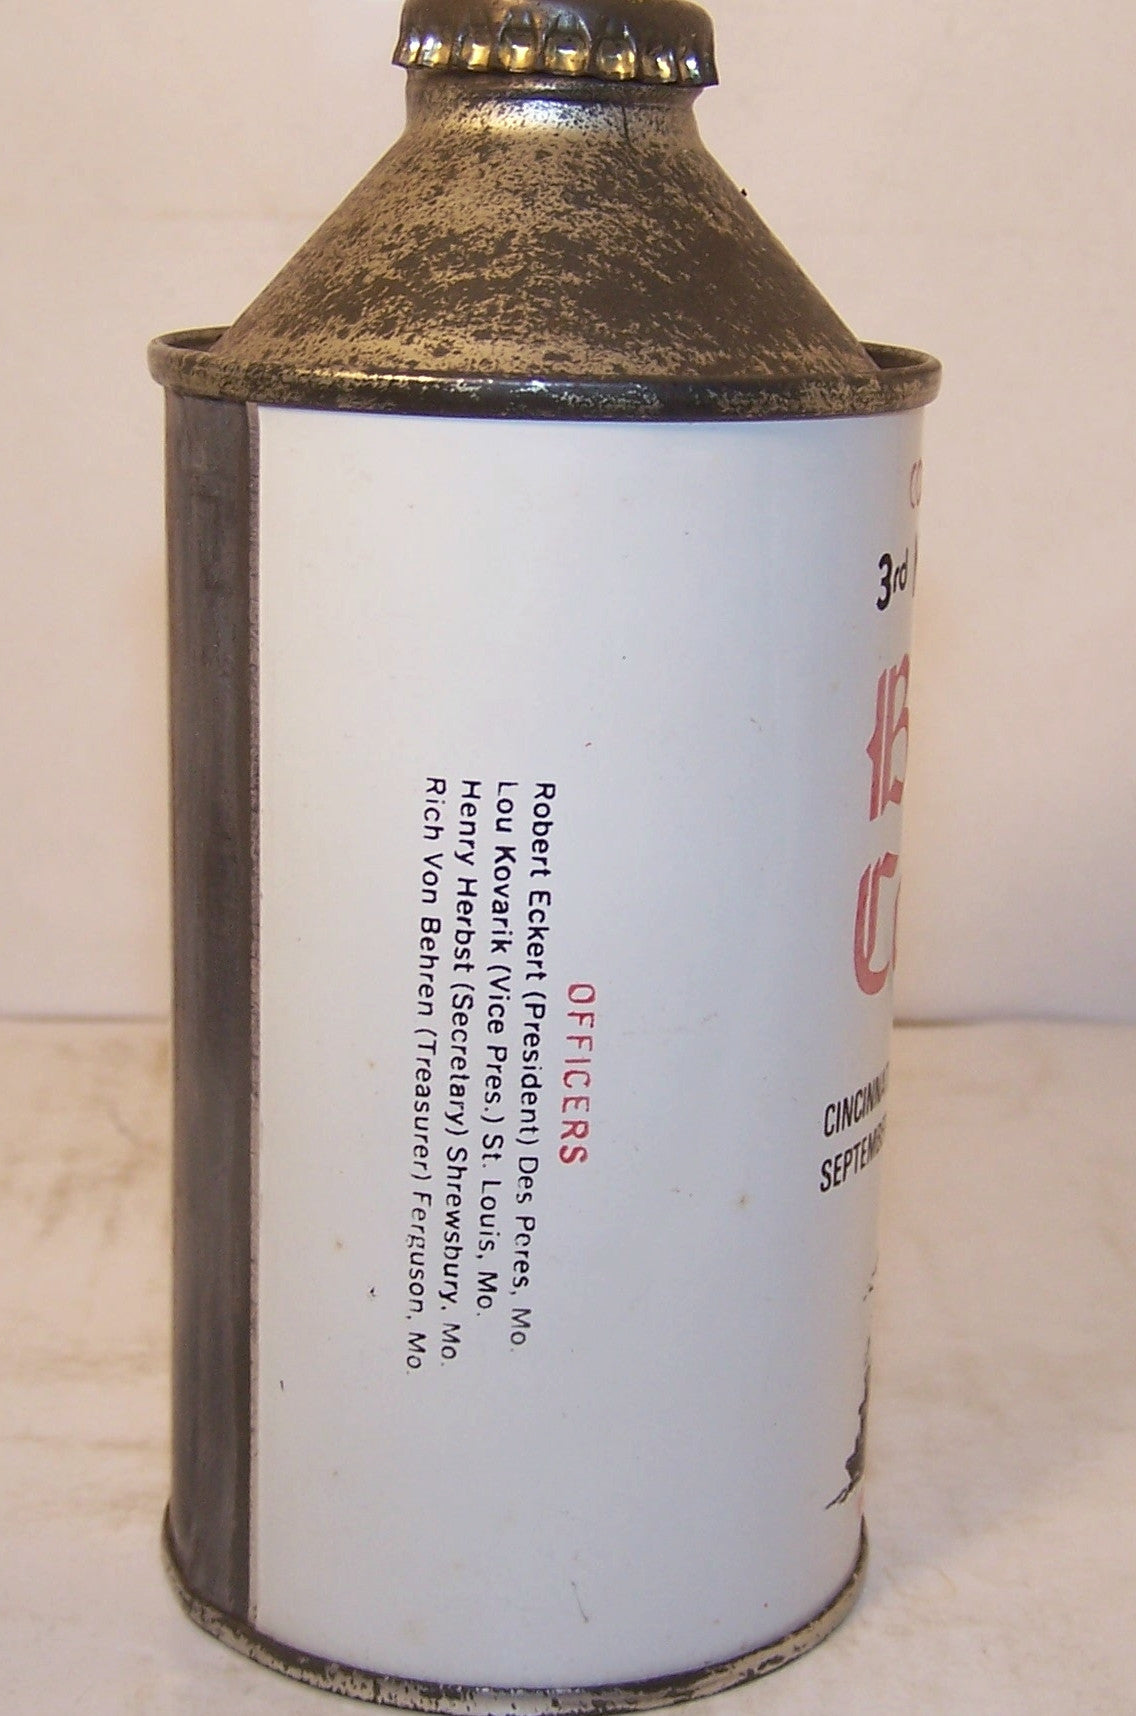 3rd National Canvention Beer Can Collectors of America Cinci Ohio Sold on 09/15/17